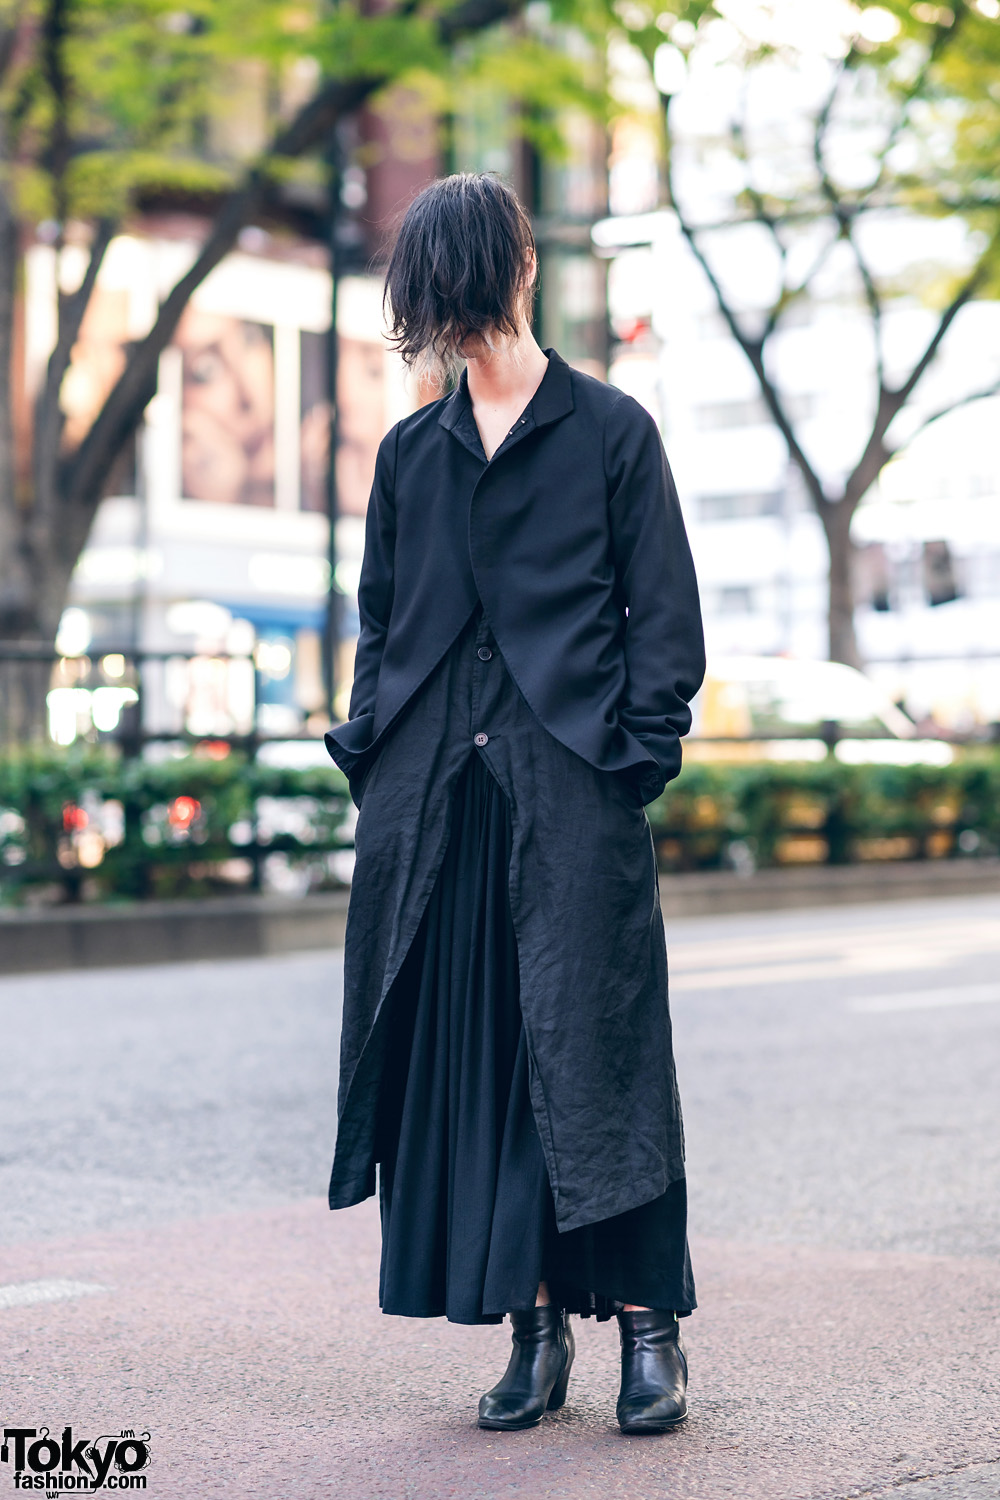 Minimalist Fashion & Long Bangs Hairstyle in Tokyo w/ Marc Le